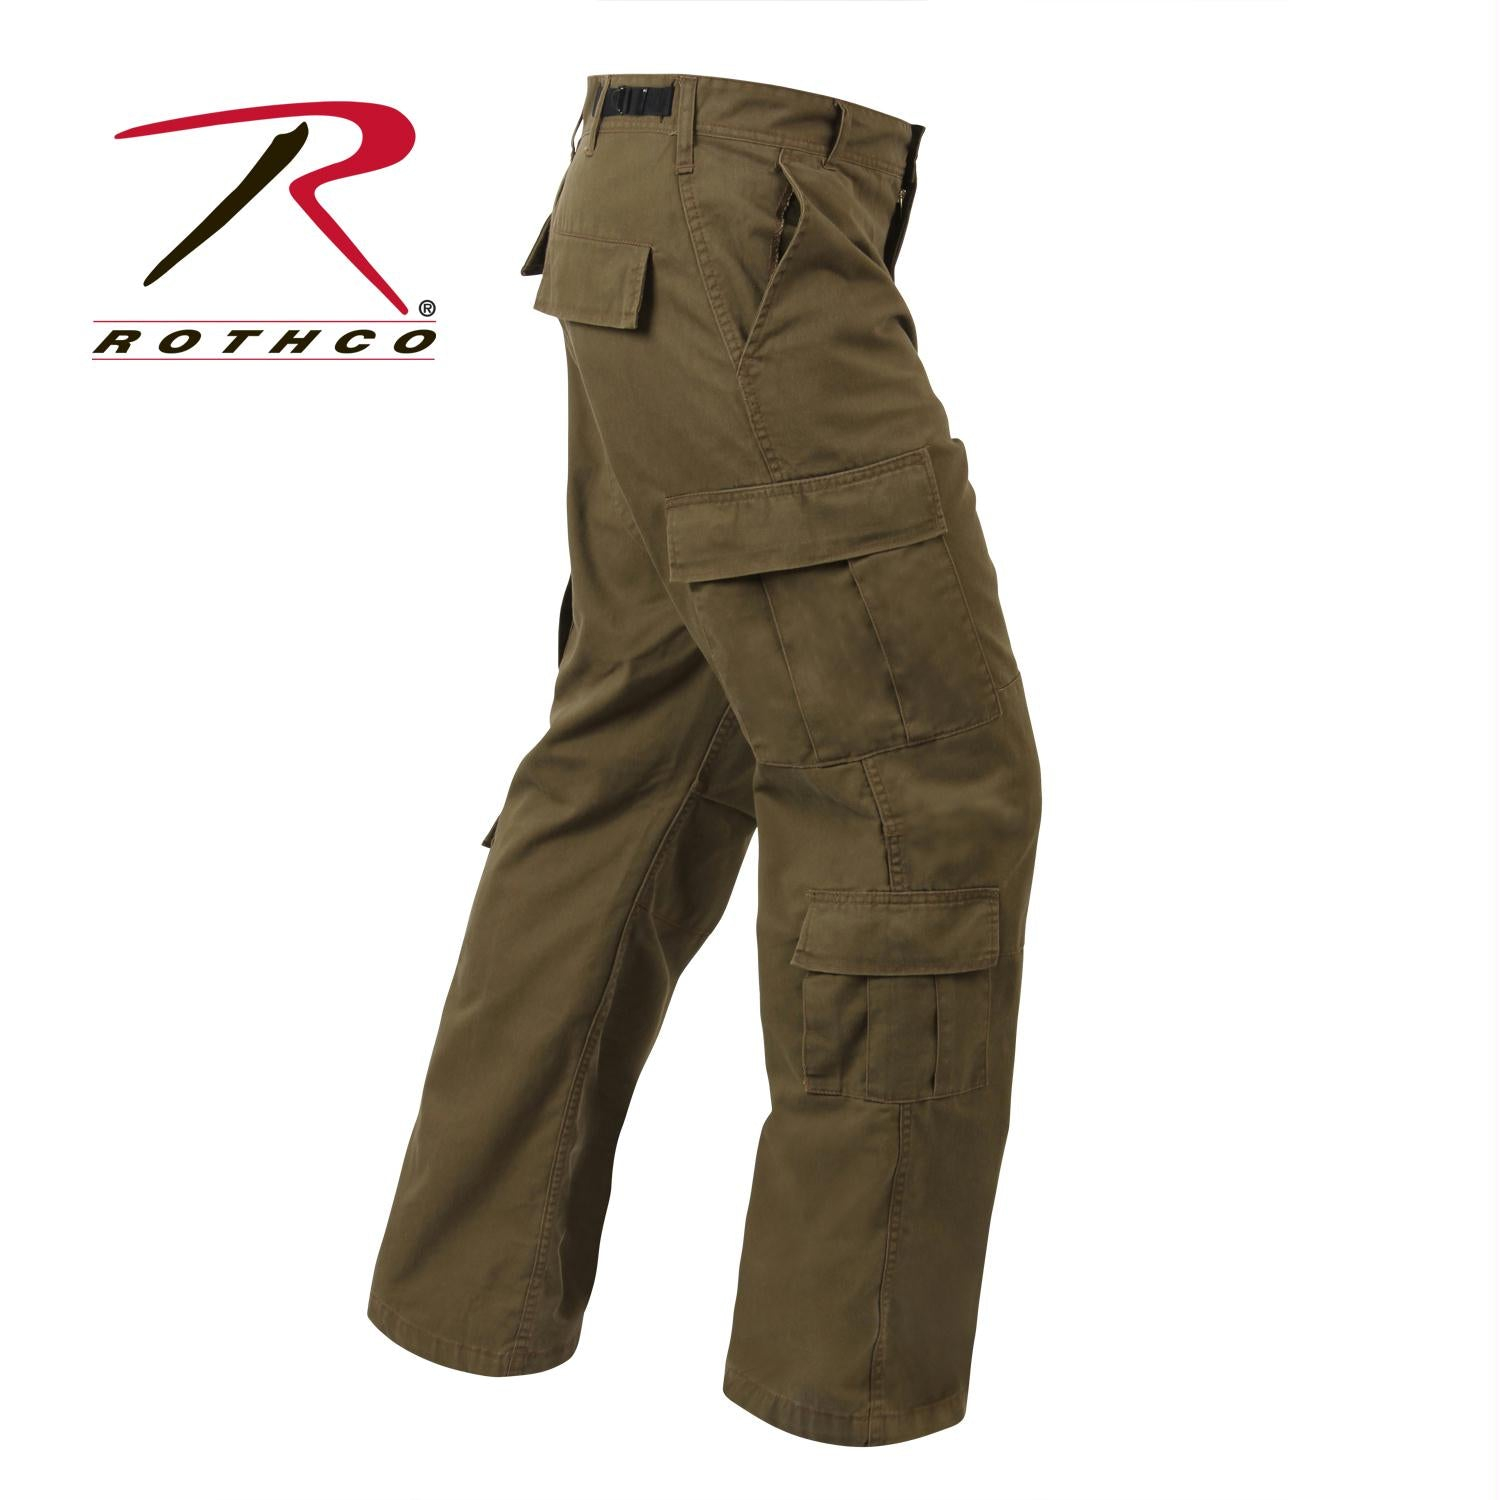 Rothco Vintage Paratrooper Fatigue Pants - Russet Brown / 3XL